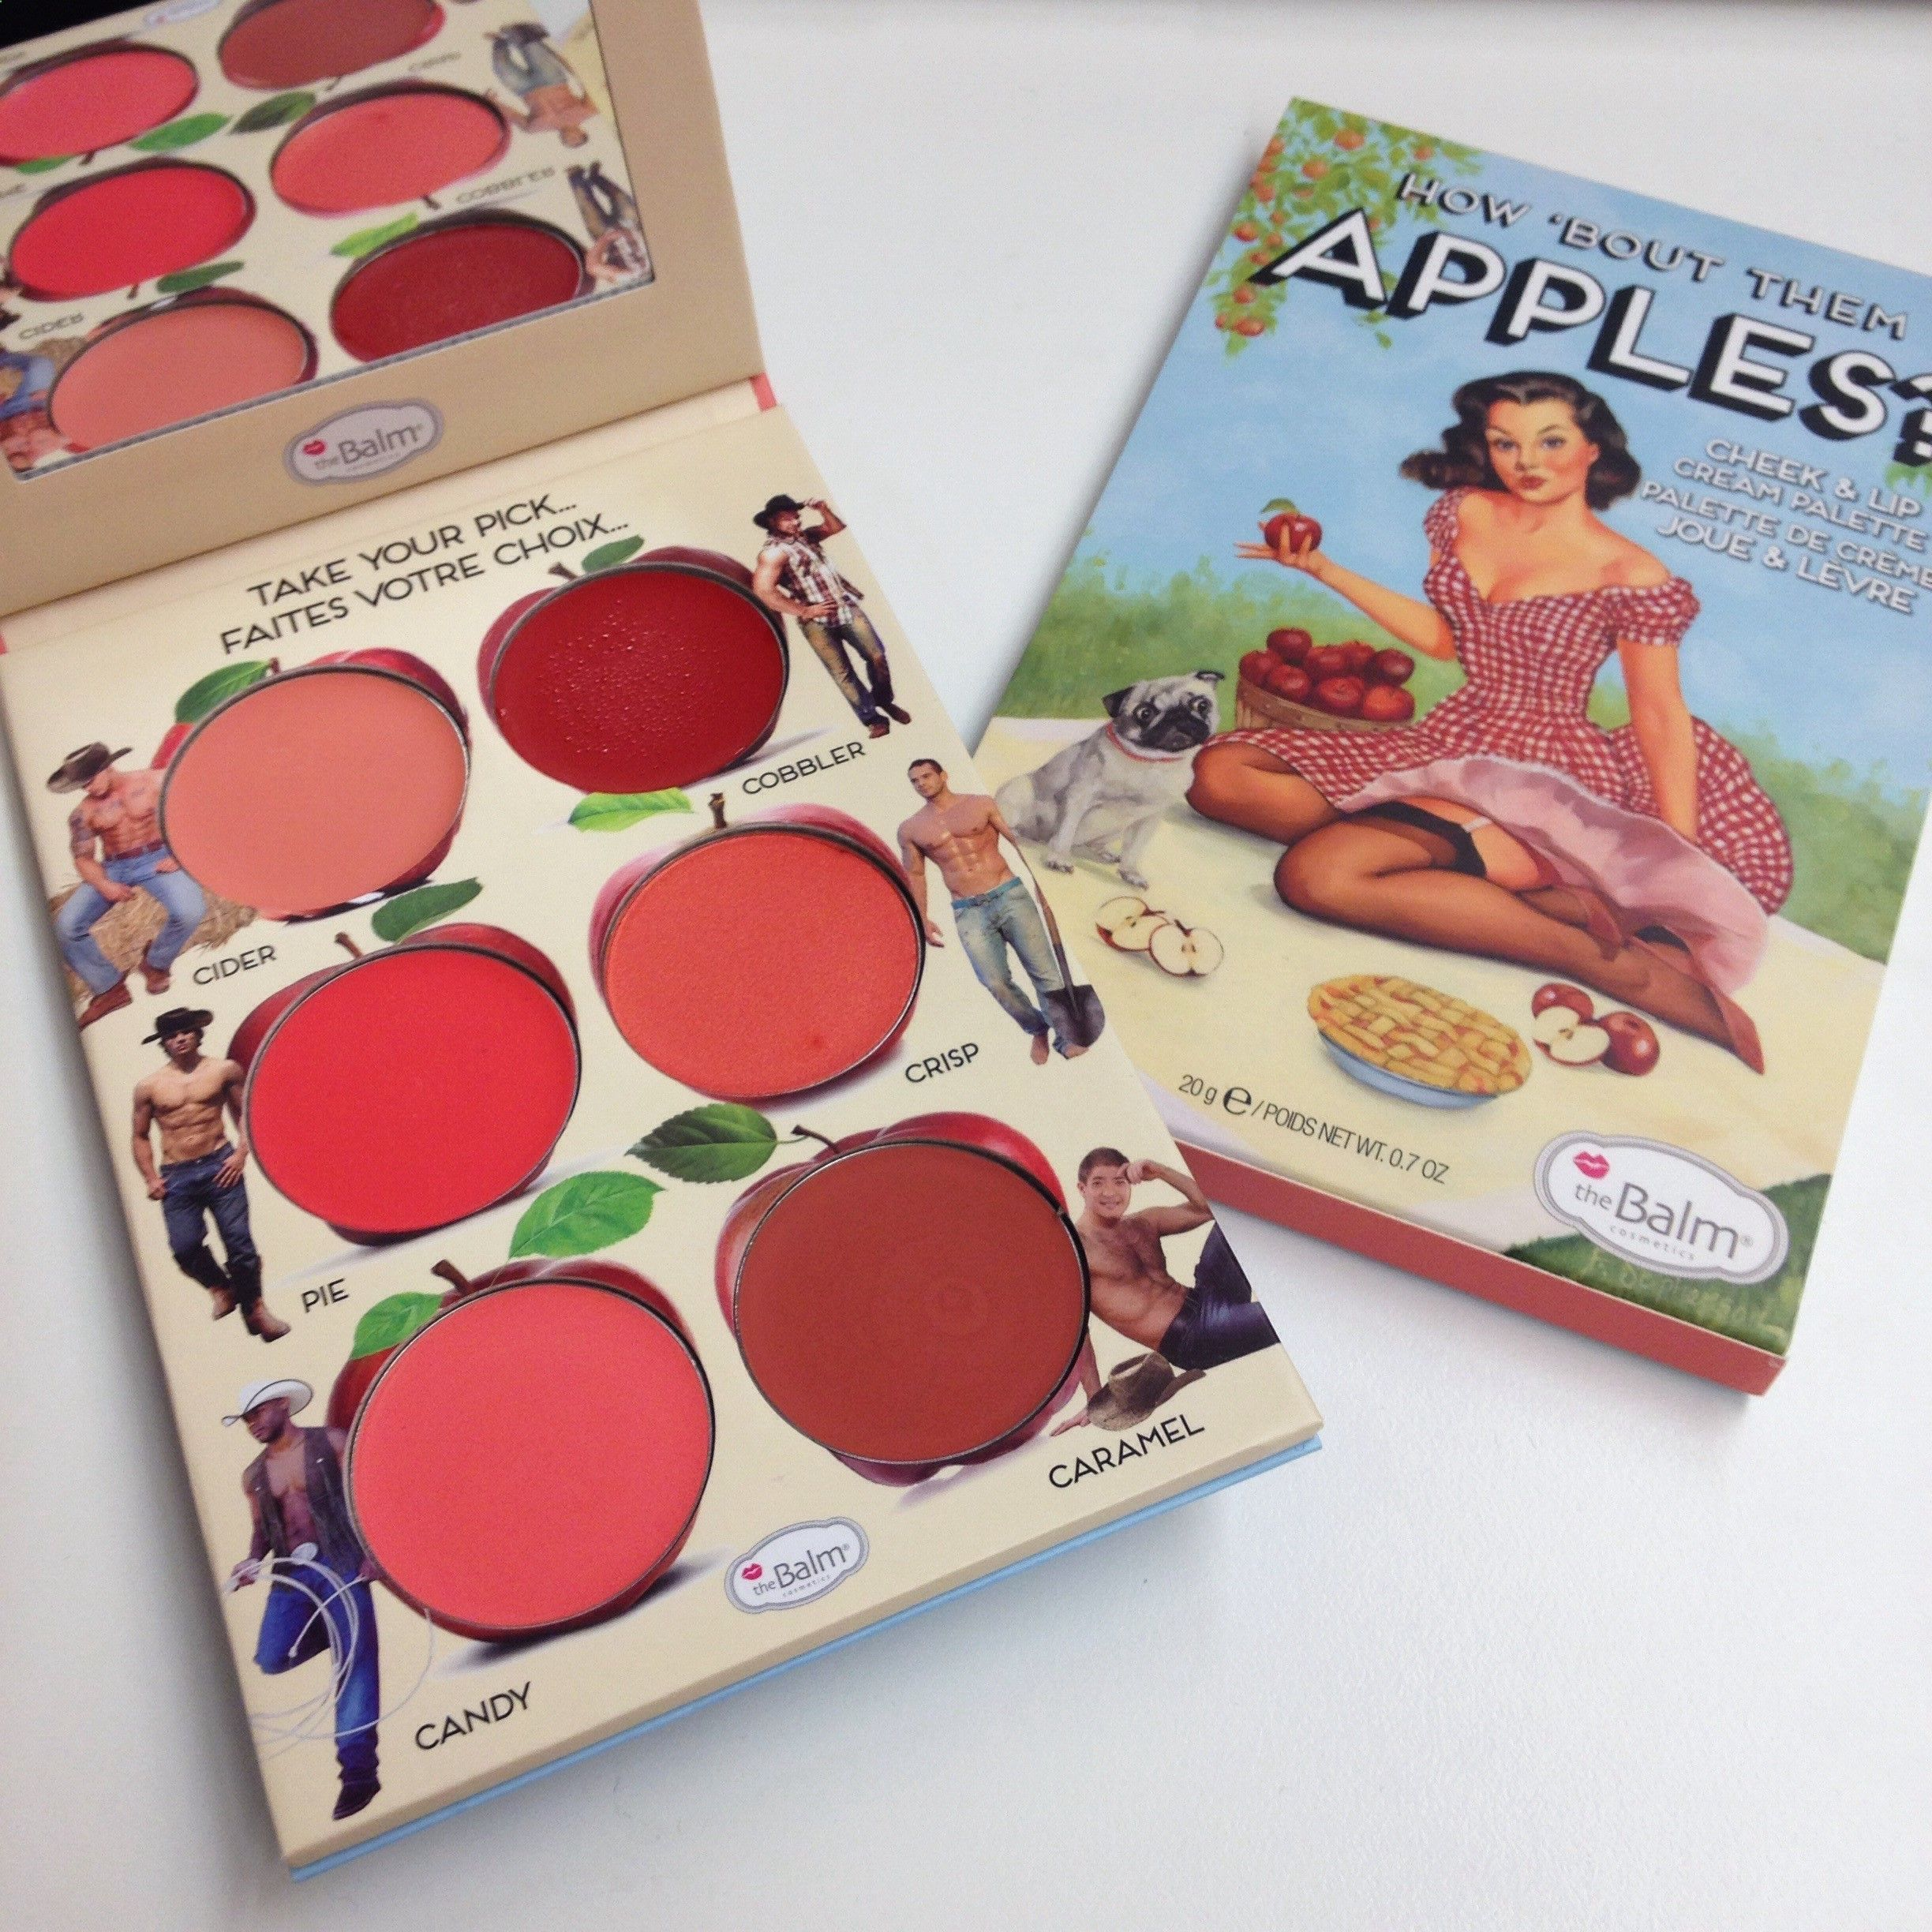 About them apples cheek palette from the balm omg! Need